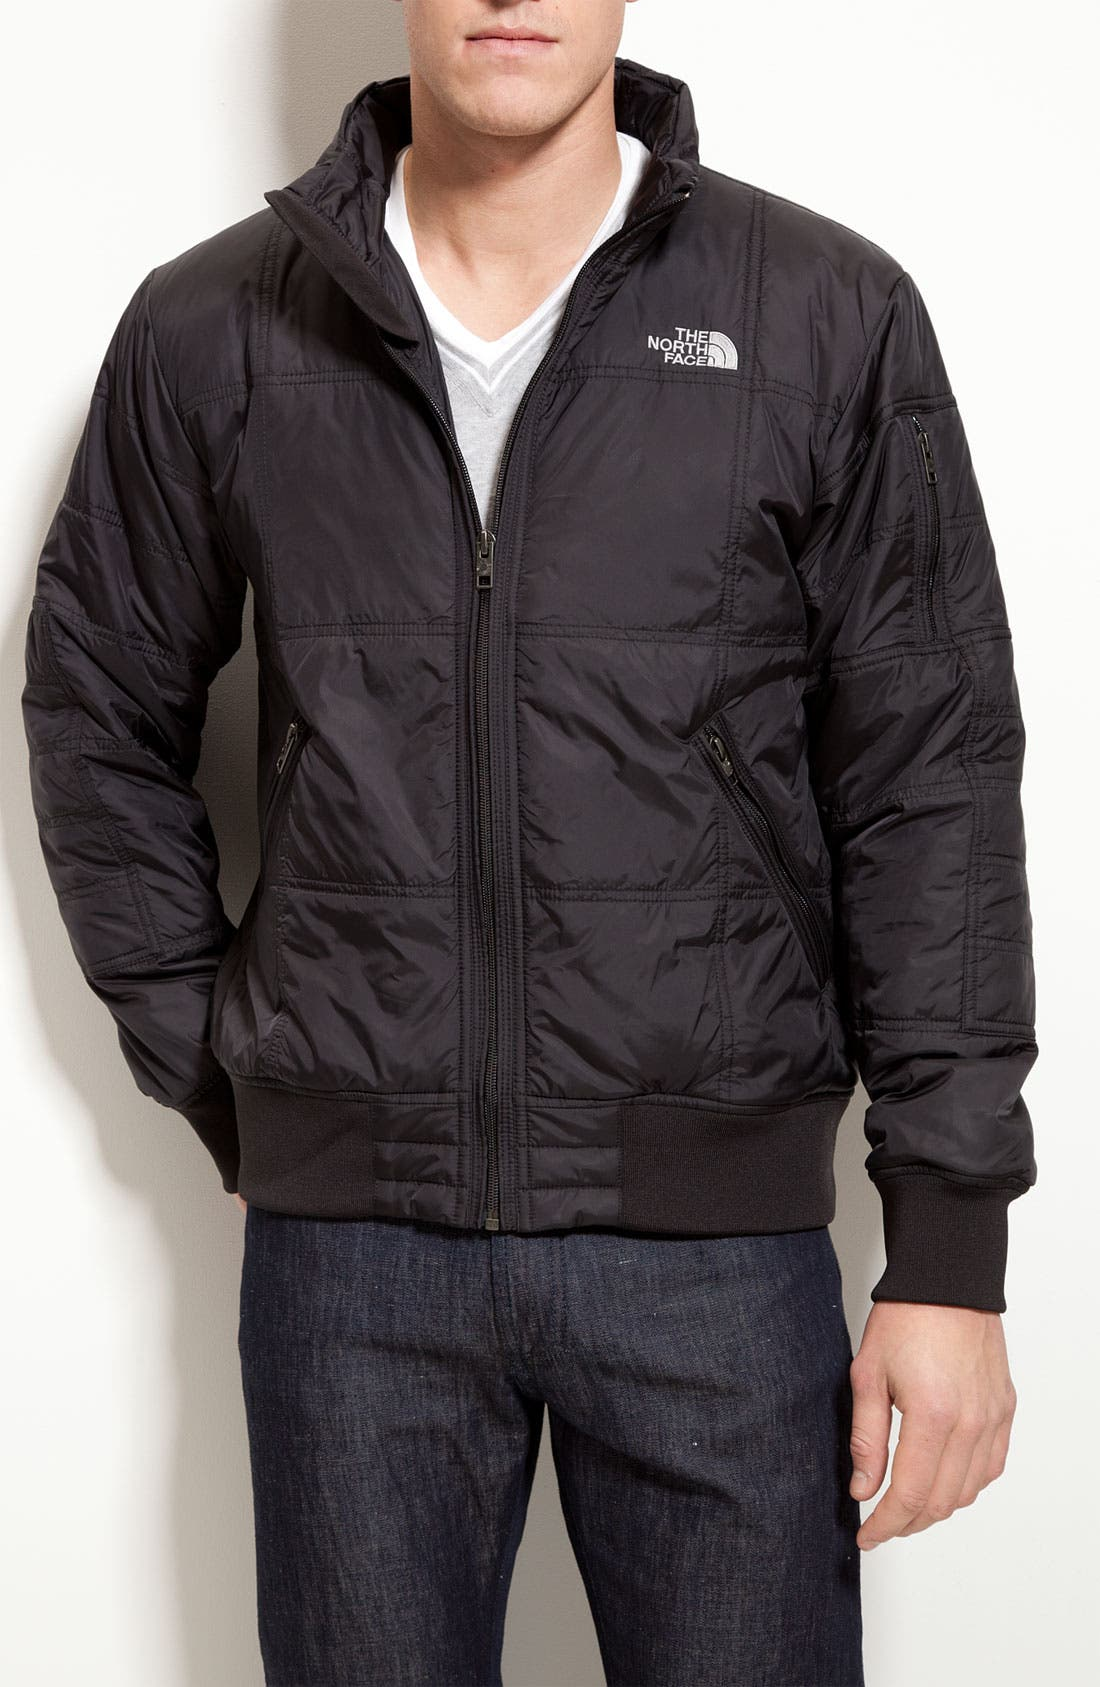 Alternate Image 1 Selected - The North Face 'Boss' Quilted Bomber Jacket